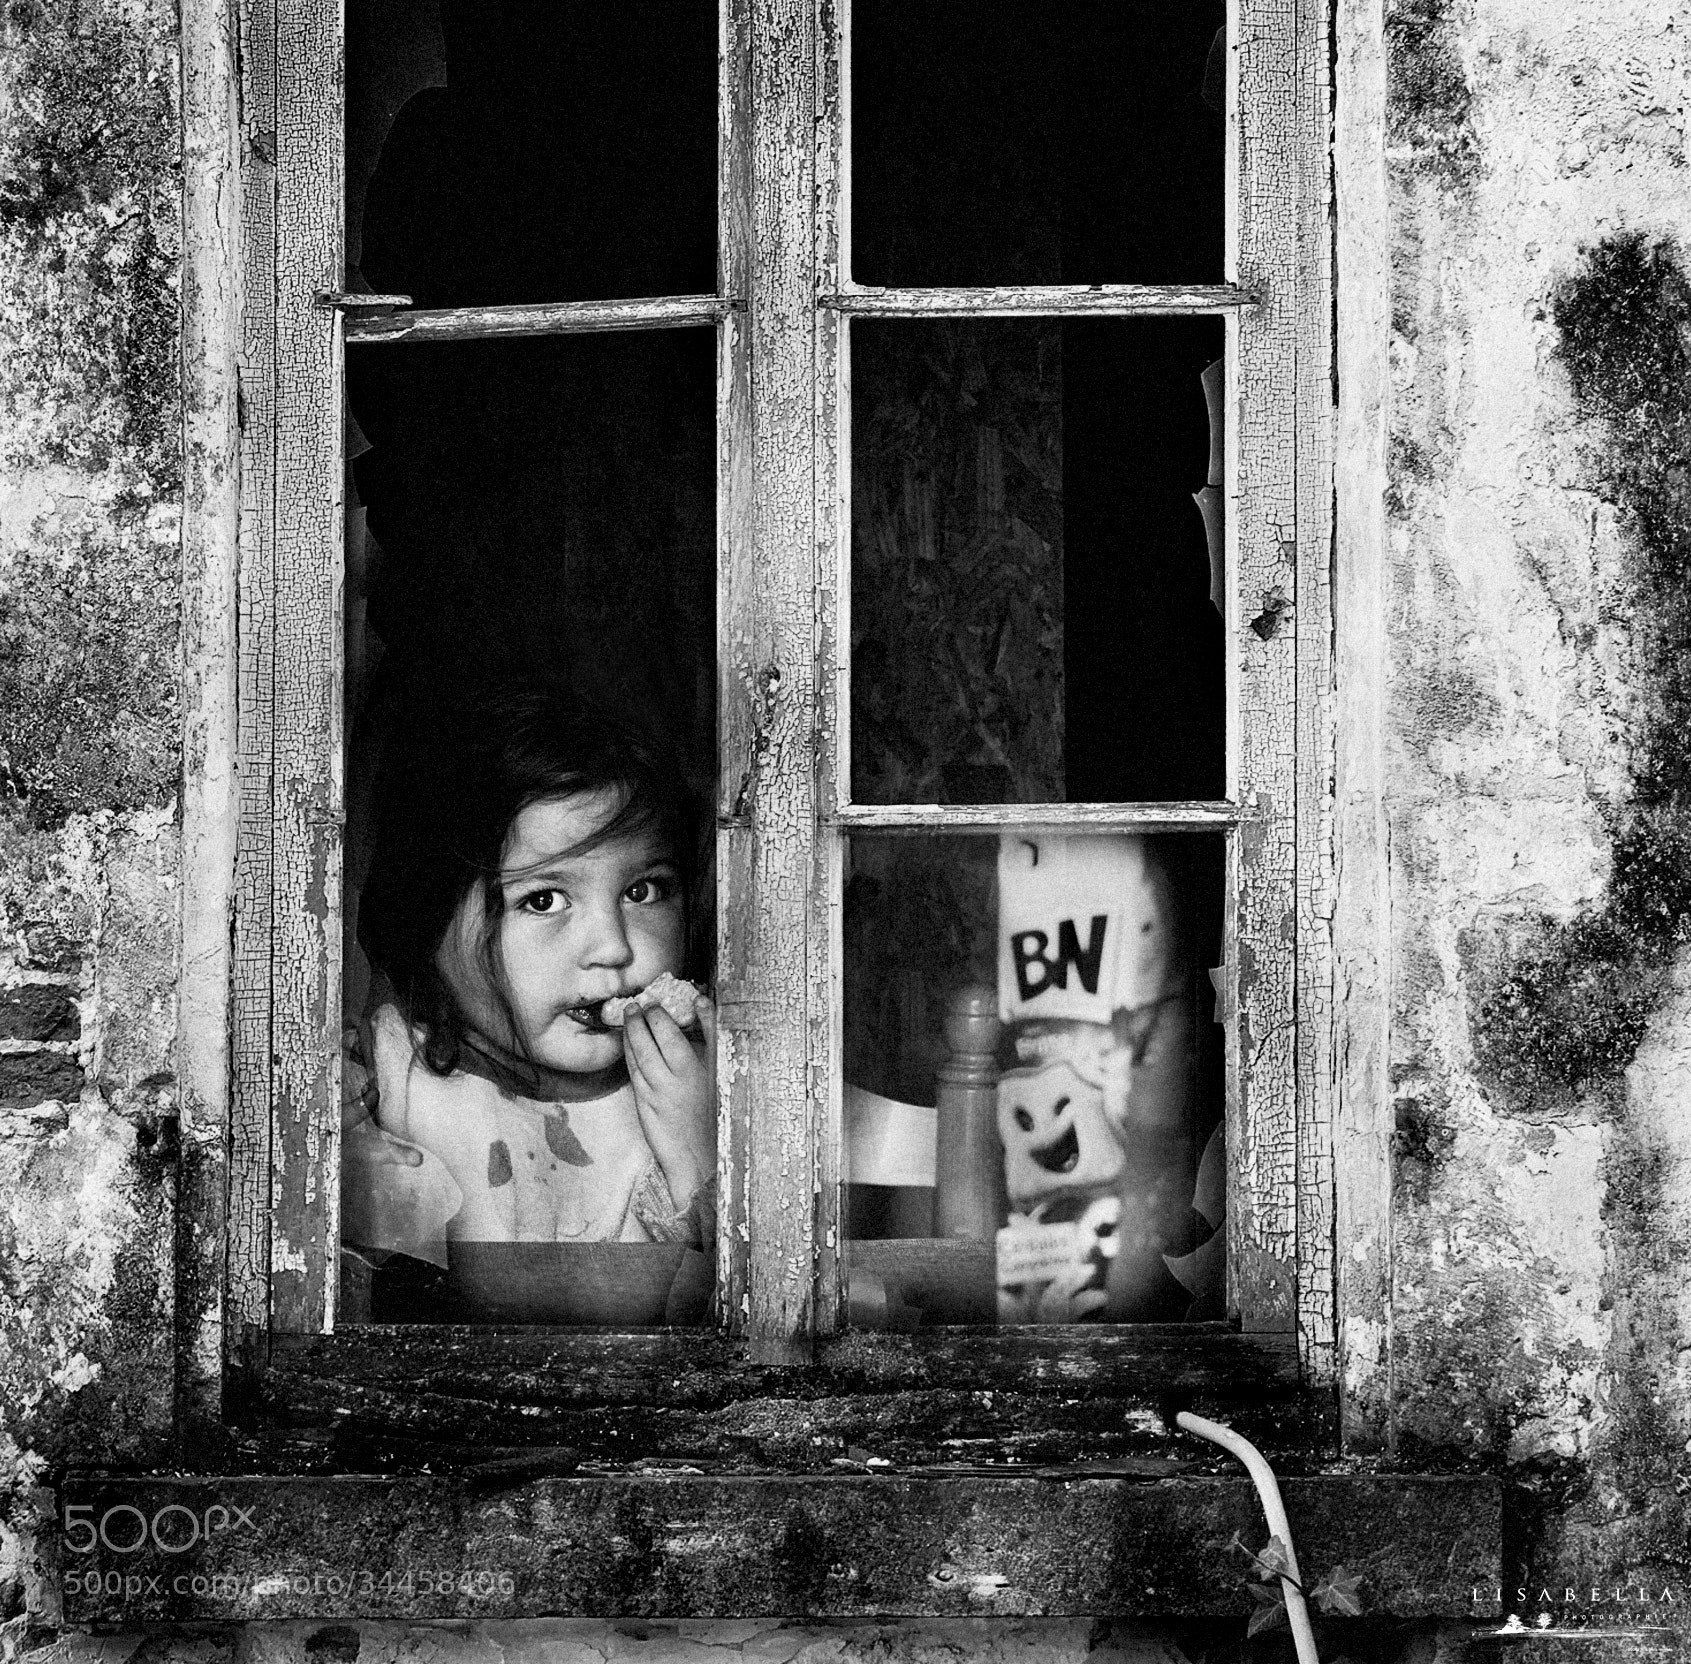 Photograph La fillette et la maison abandonnée by Lisabella Fert on 500px